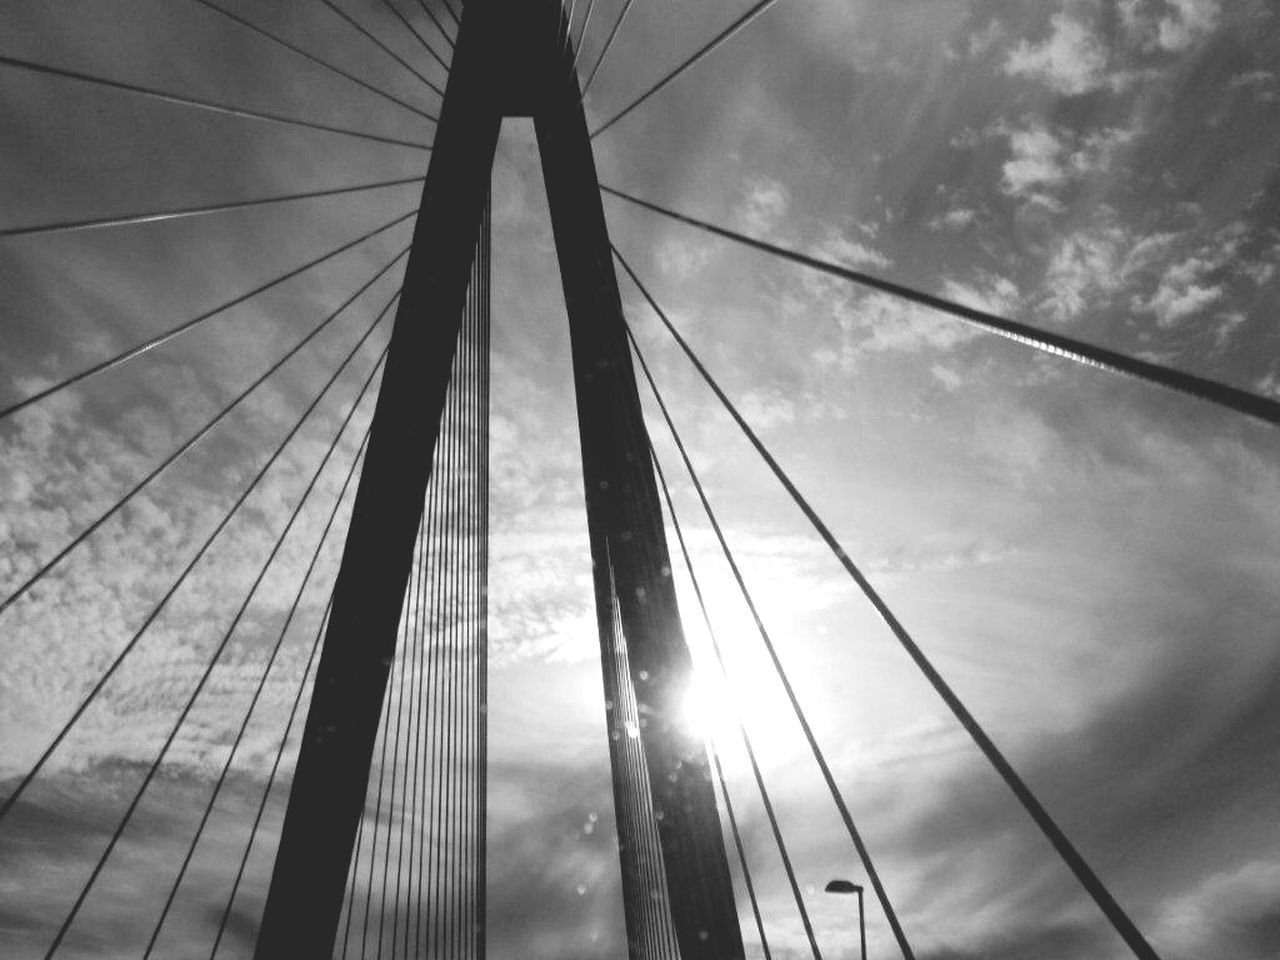 Low Angle View Of Suspension Bridge